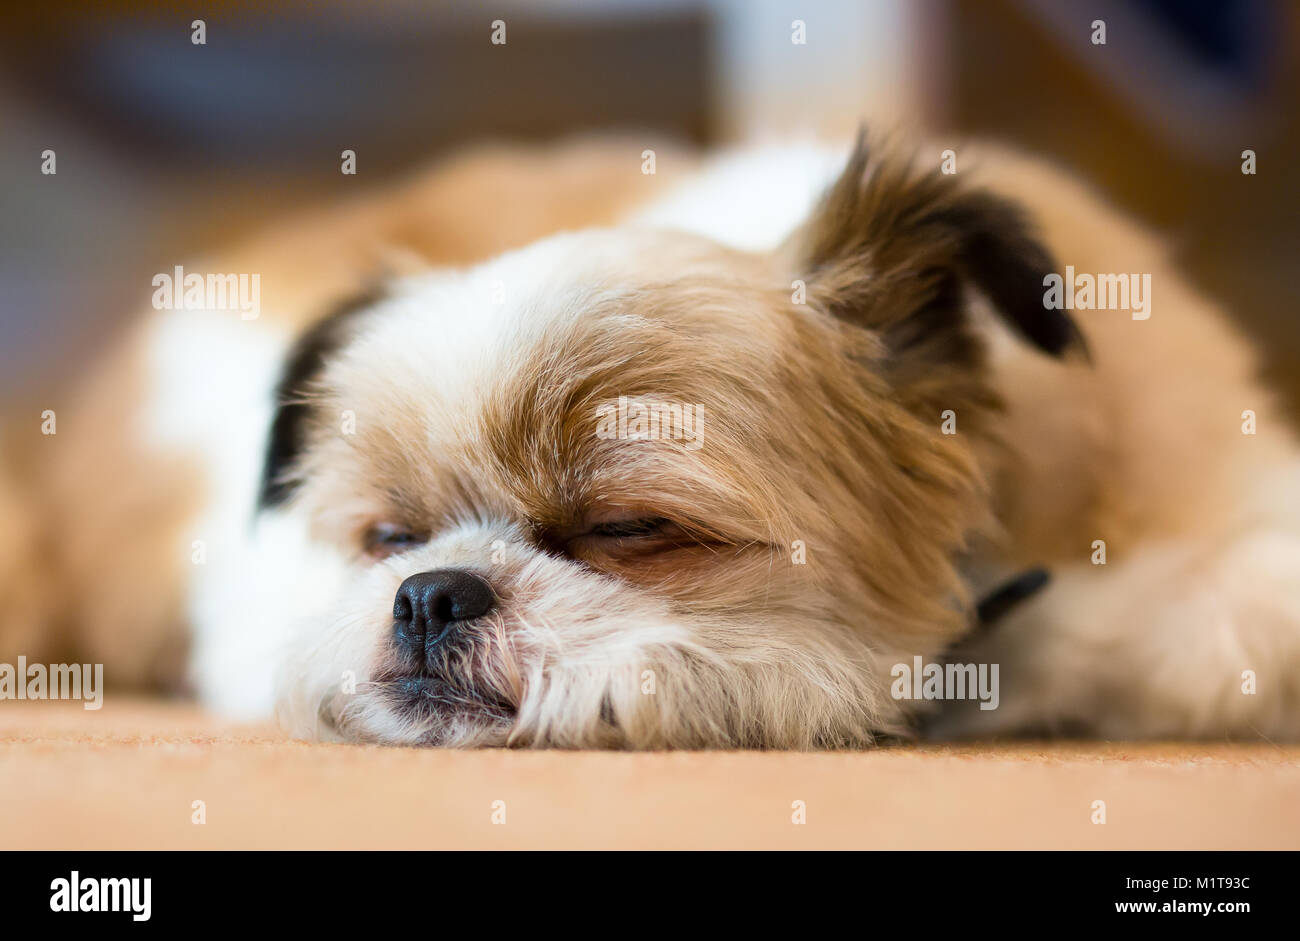 Detailed close up of cute, fluffy Pomeranian Shih Tzu dog asleep, lying with chin on floor, one ear humorously cocked! - Stock Image